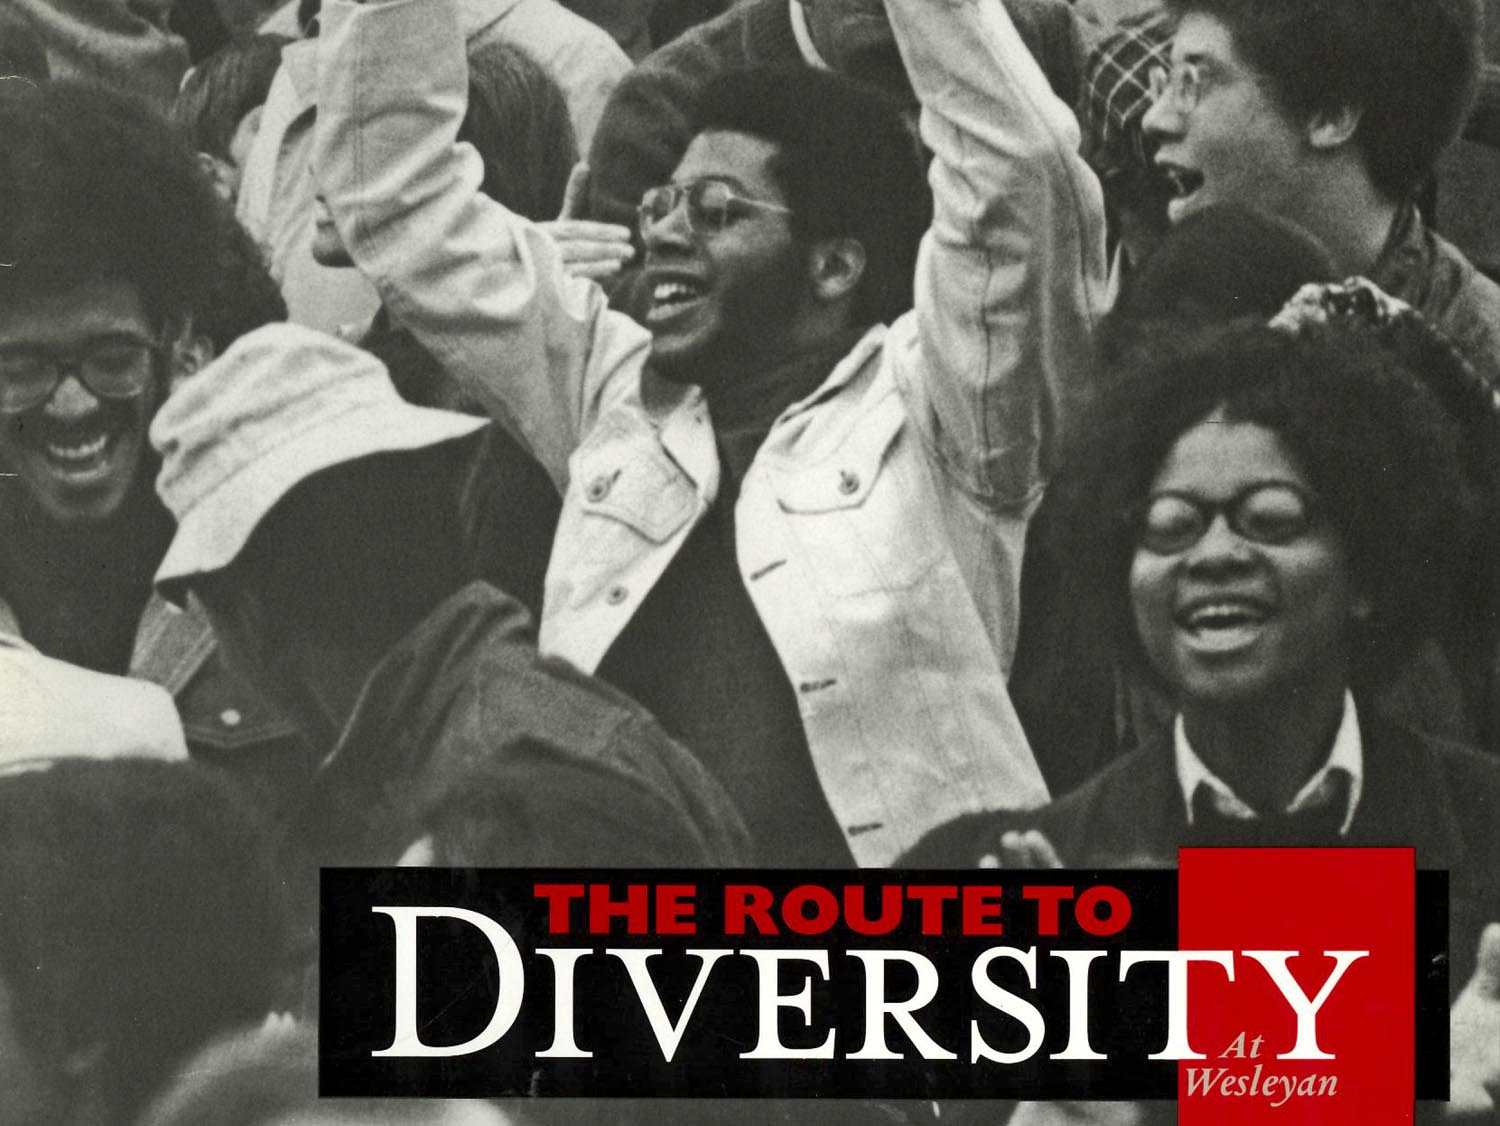 WESLEYAN MAGAZINE SUPPLEMENT: THE ROUTE TO DIVERSITY